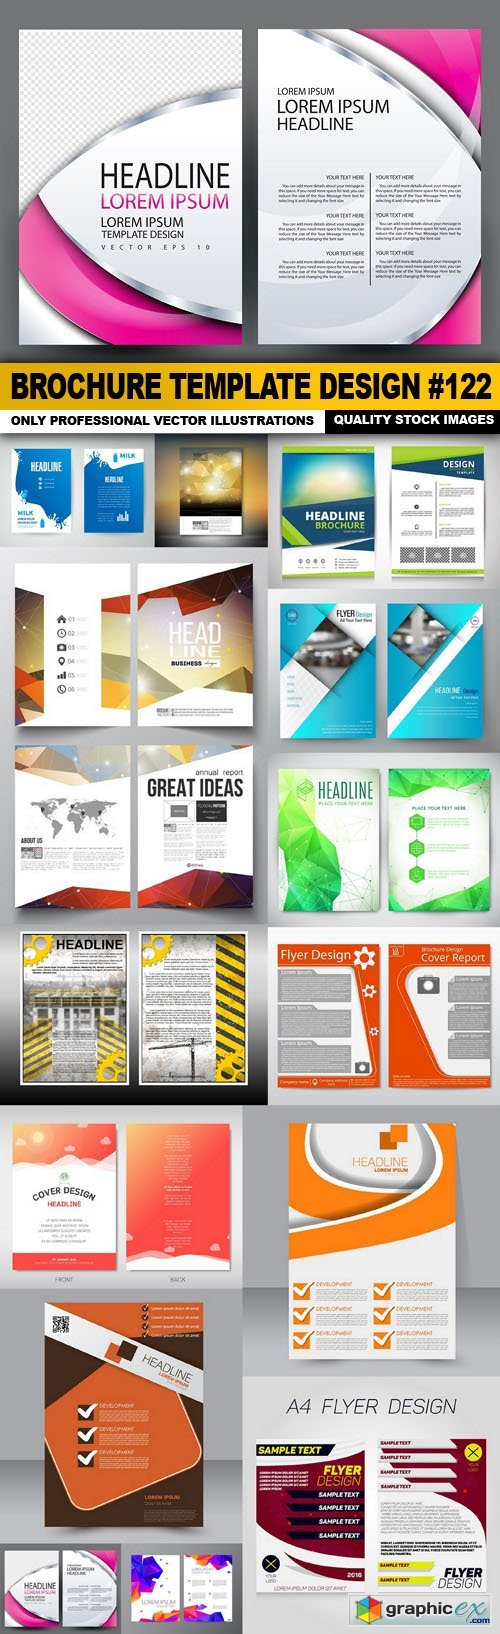 Brochure Template Design #122